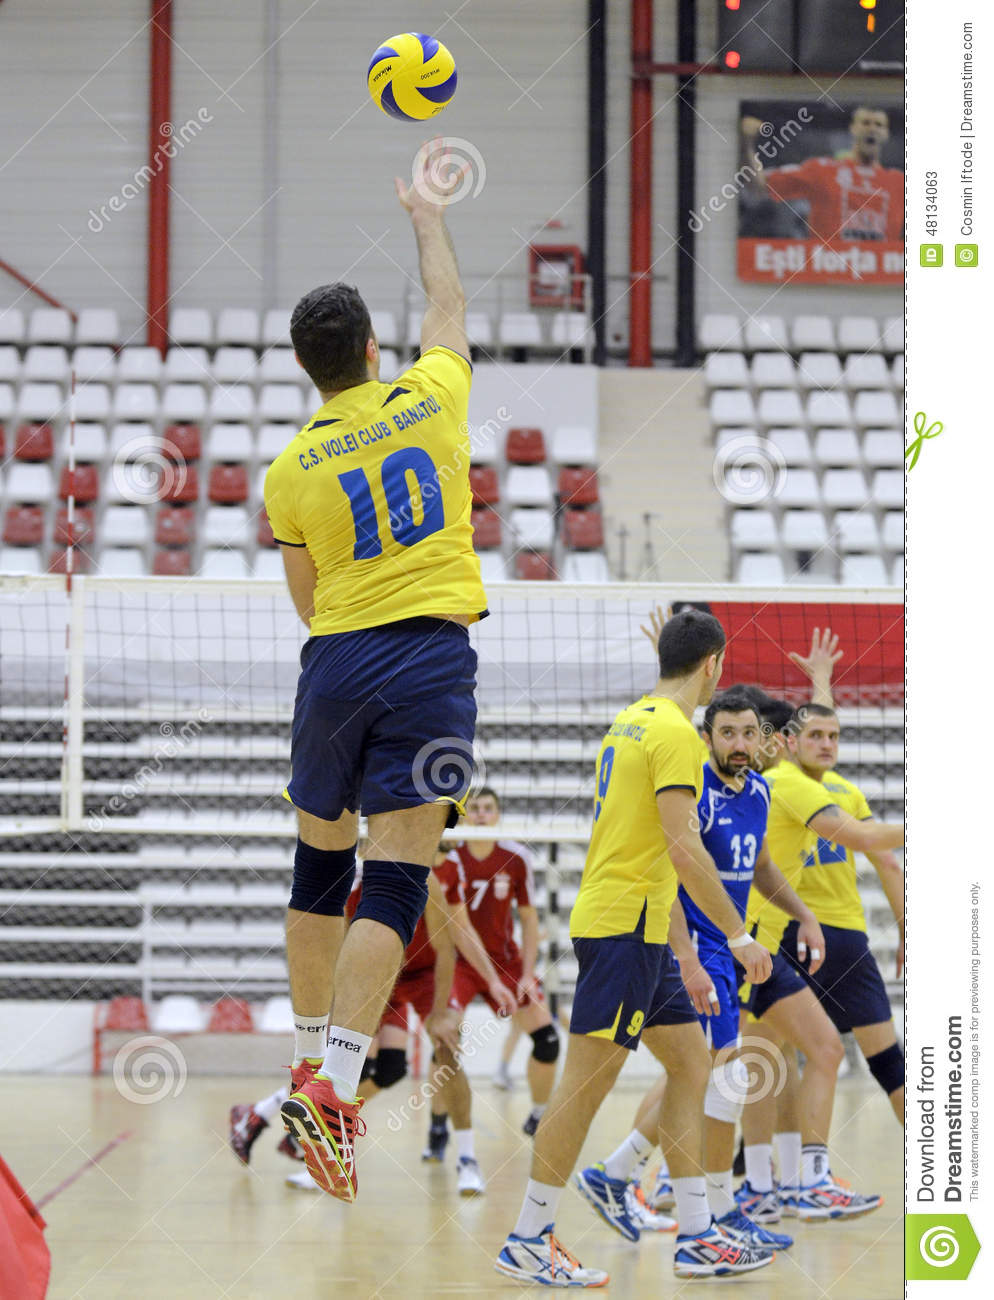 Men Volleyball Serve Editorial Stock Photo - Image: 48134063